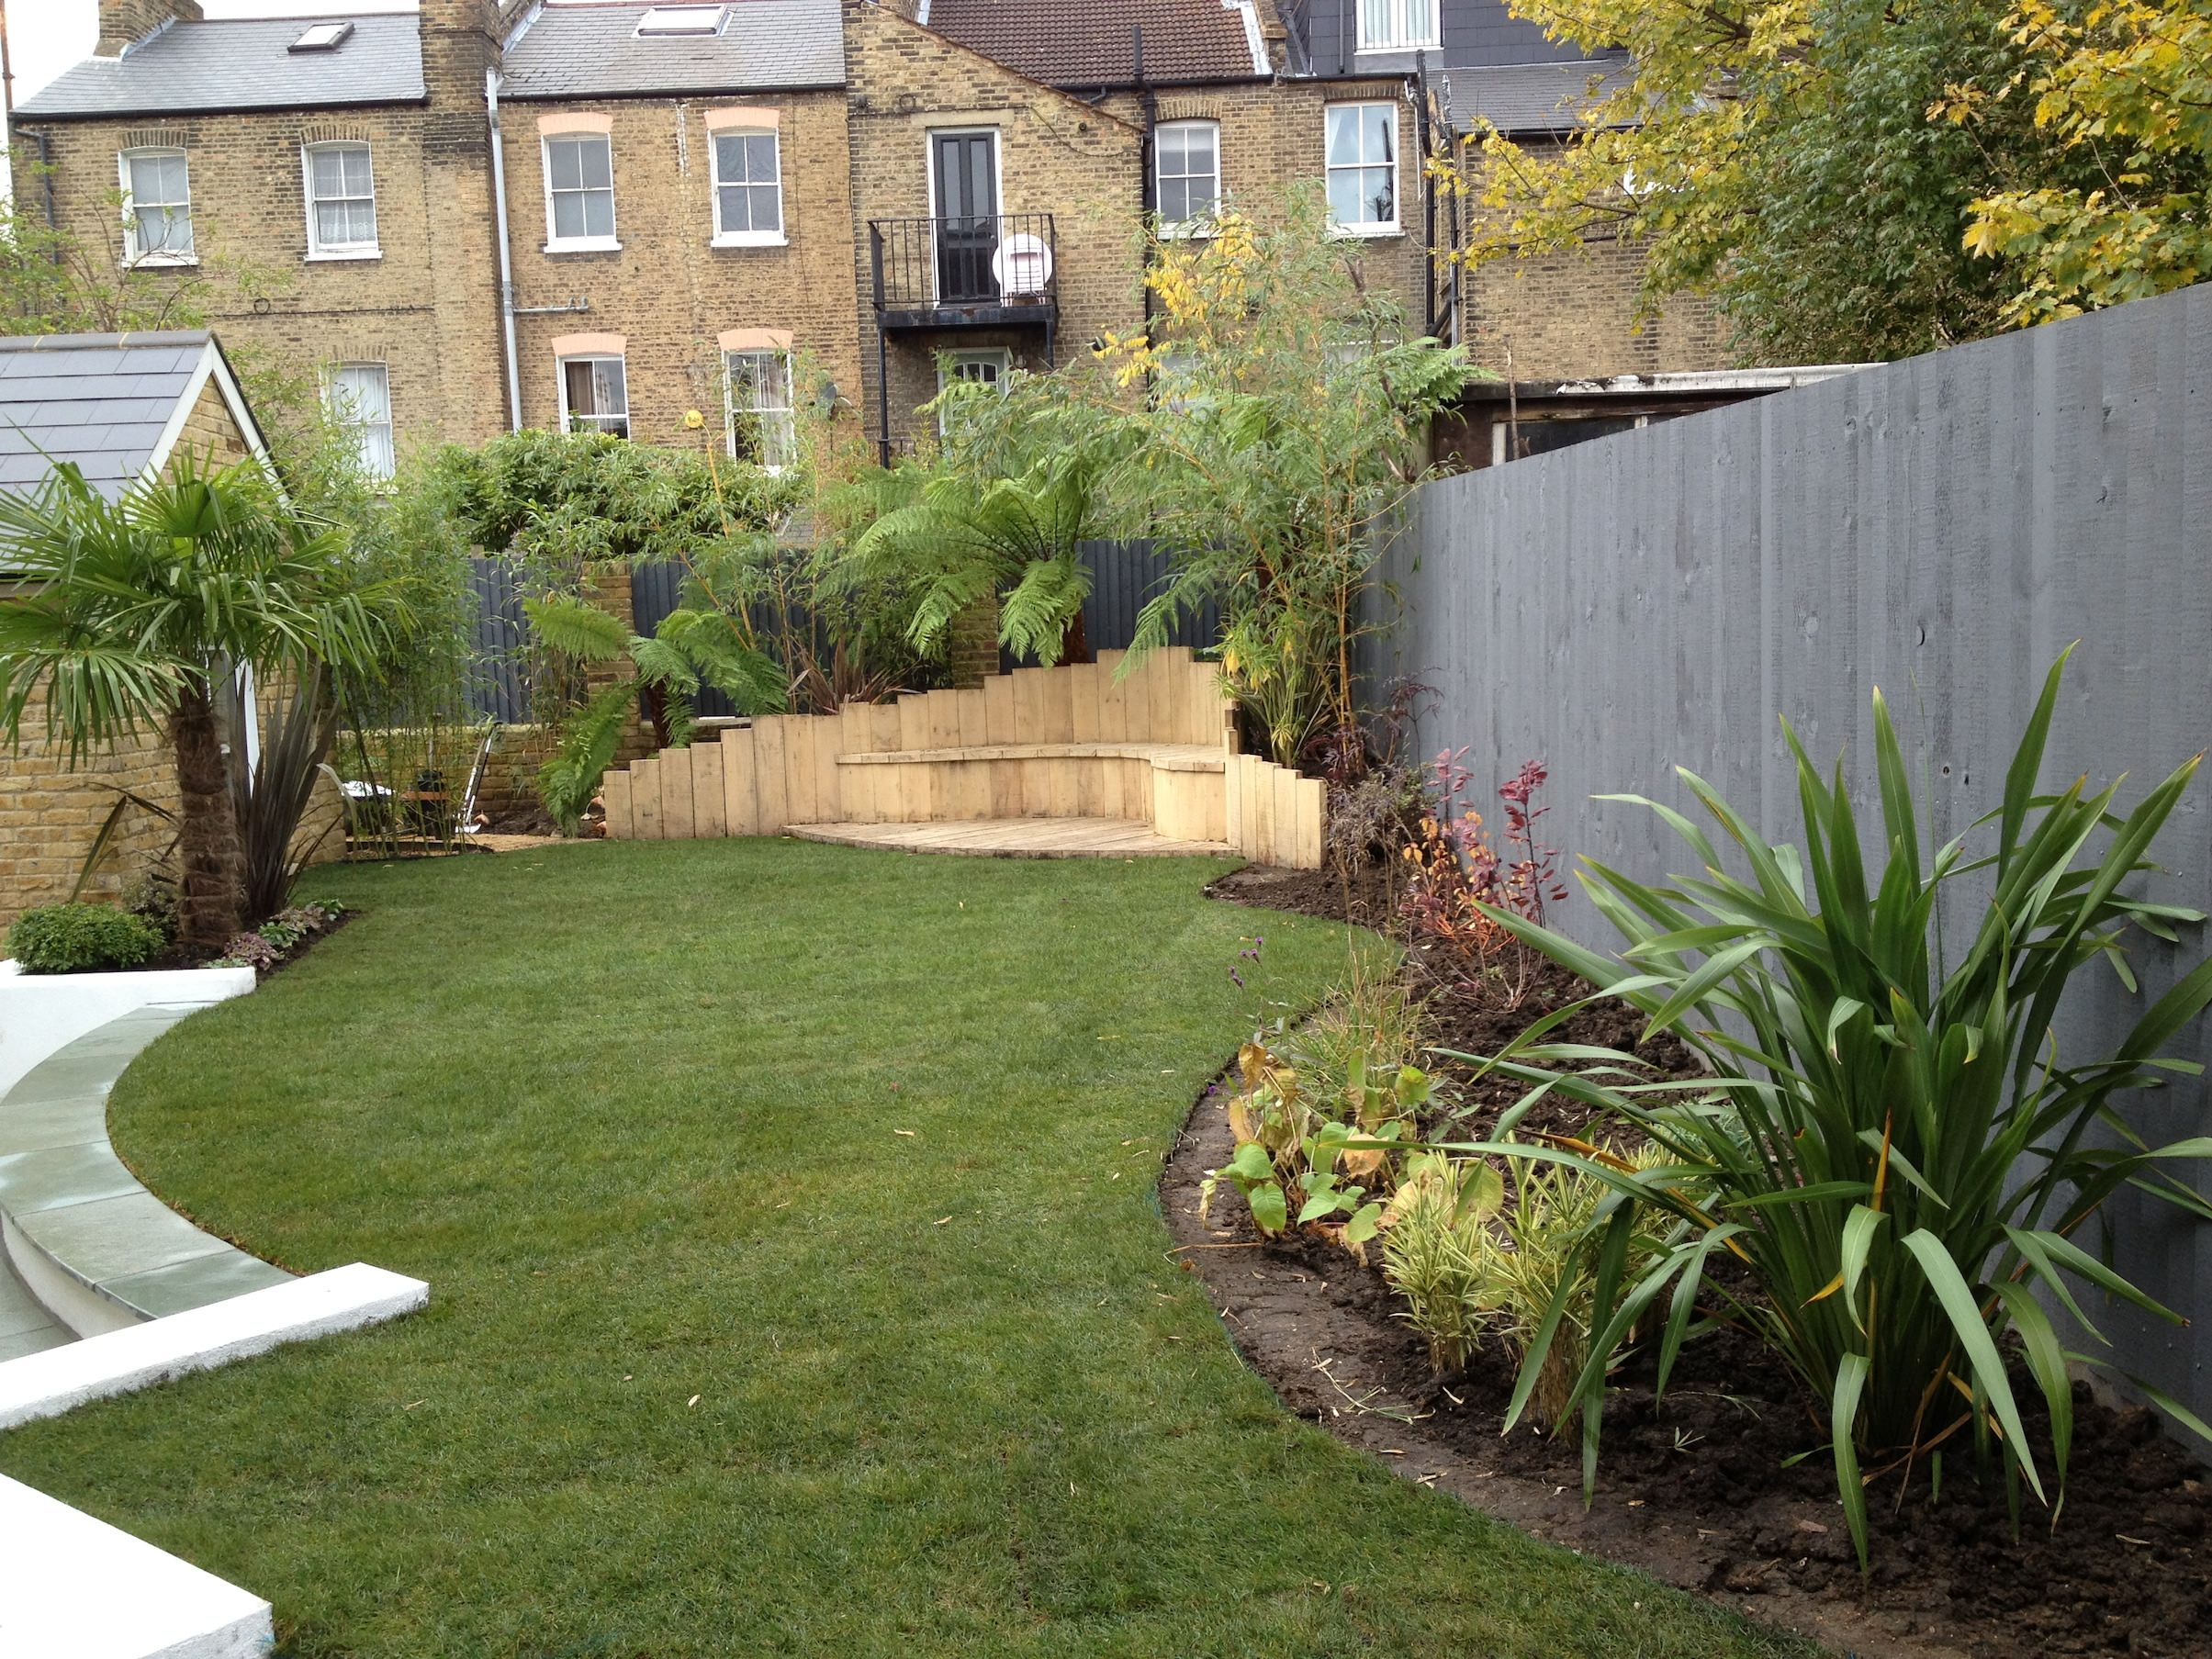 Low maintenance garden designs garden club london for Low maintenance garden design pictures